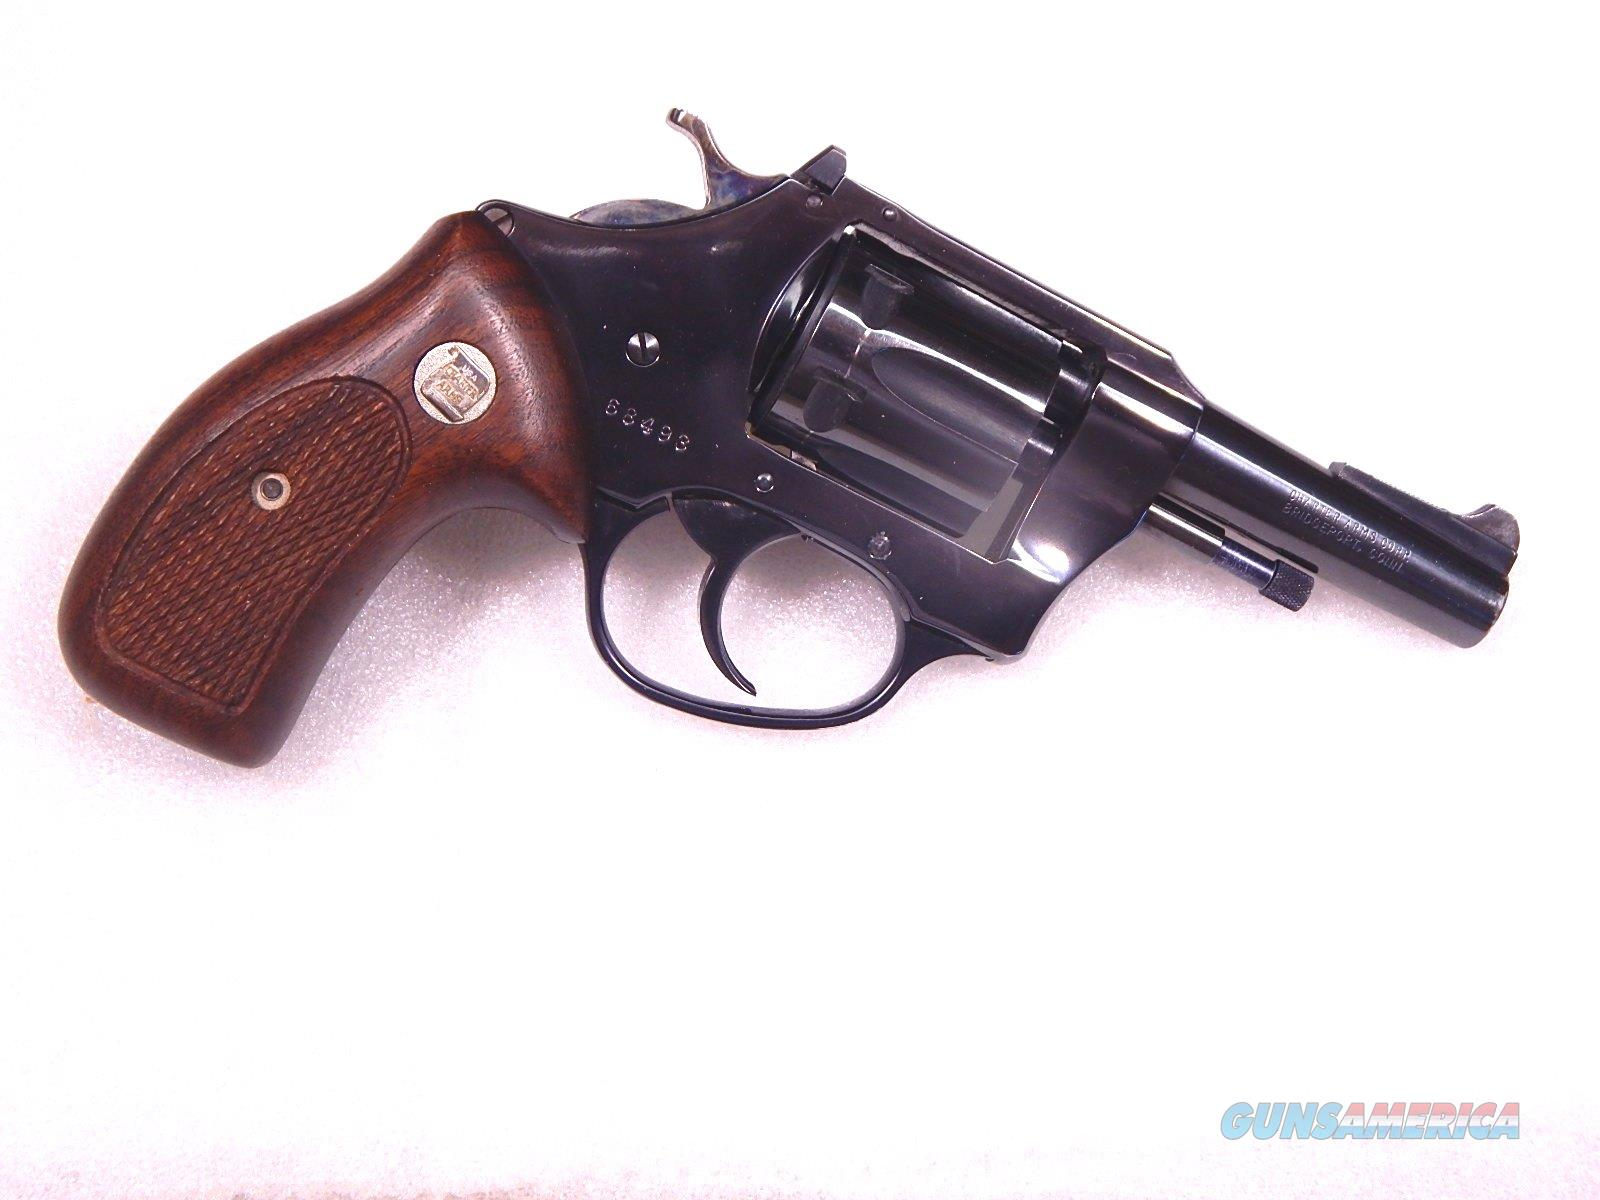 Charter Arms Pocket Target - Collector Gun  Guns > Pistols > Charter Arms Revolvers